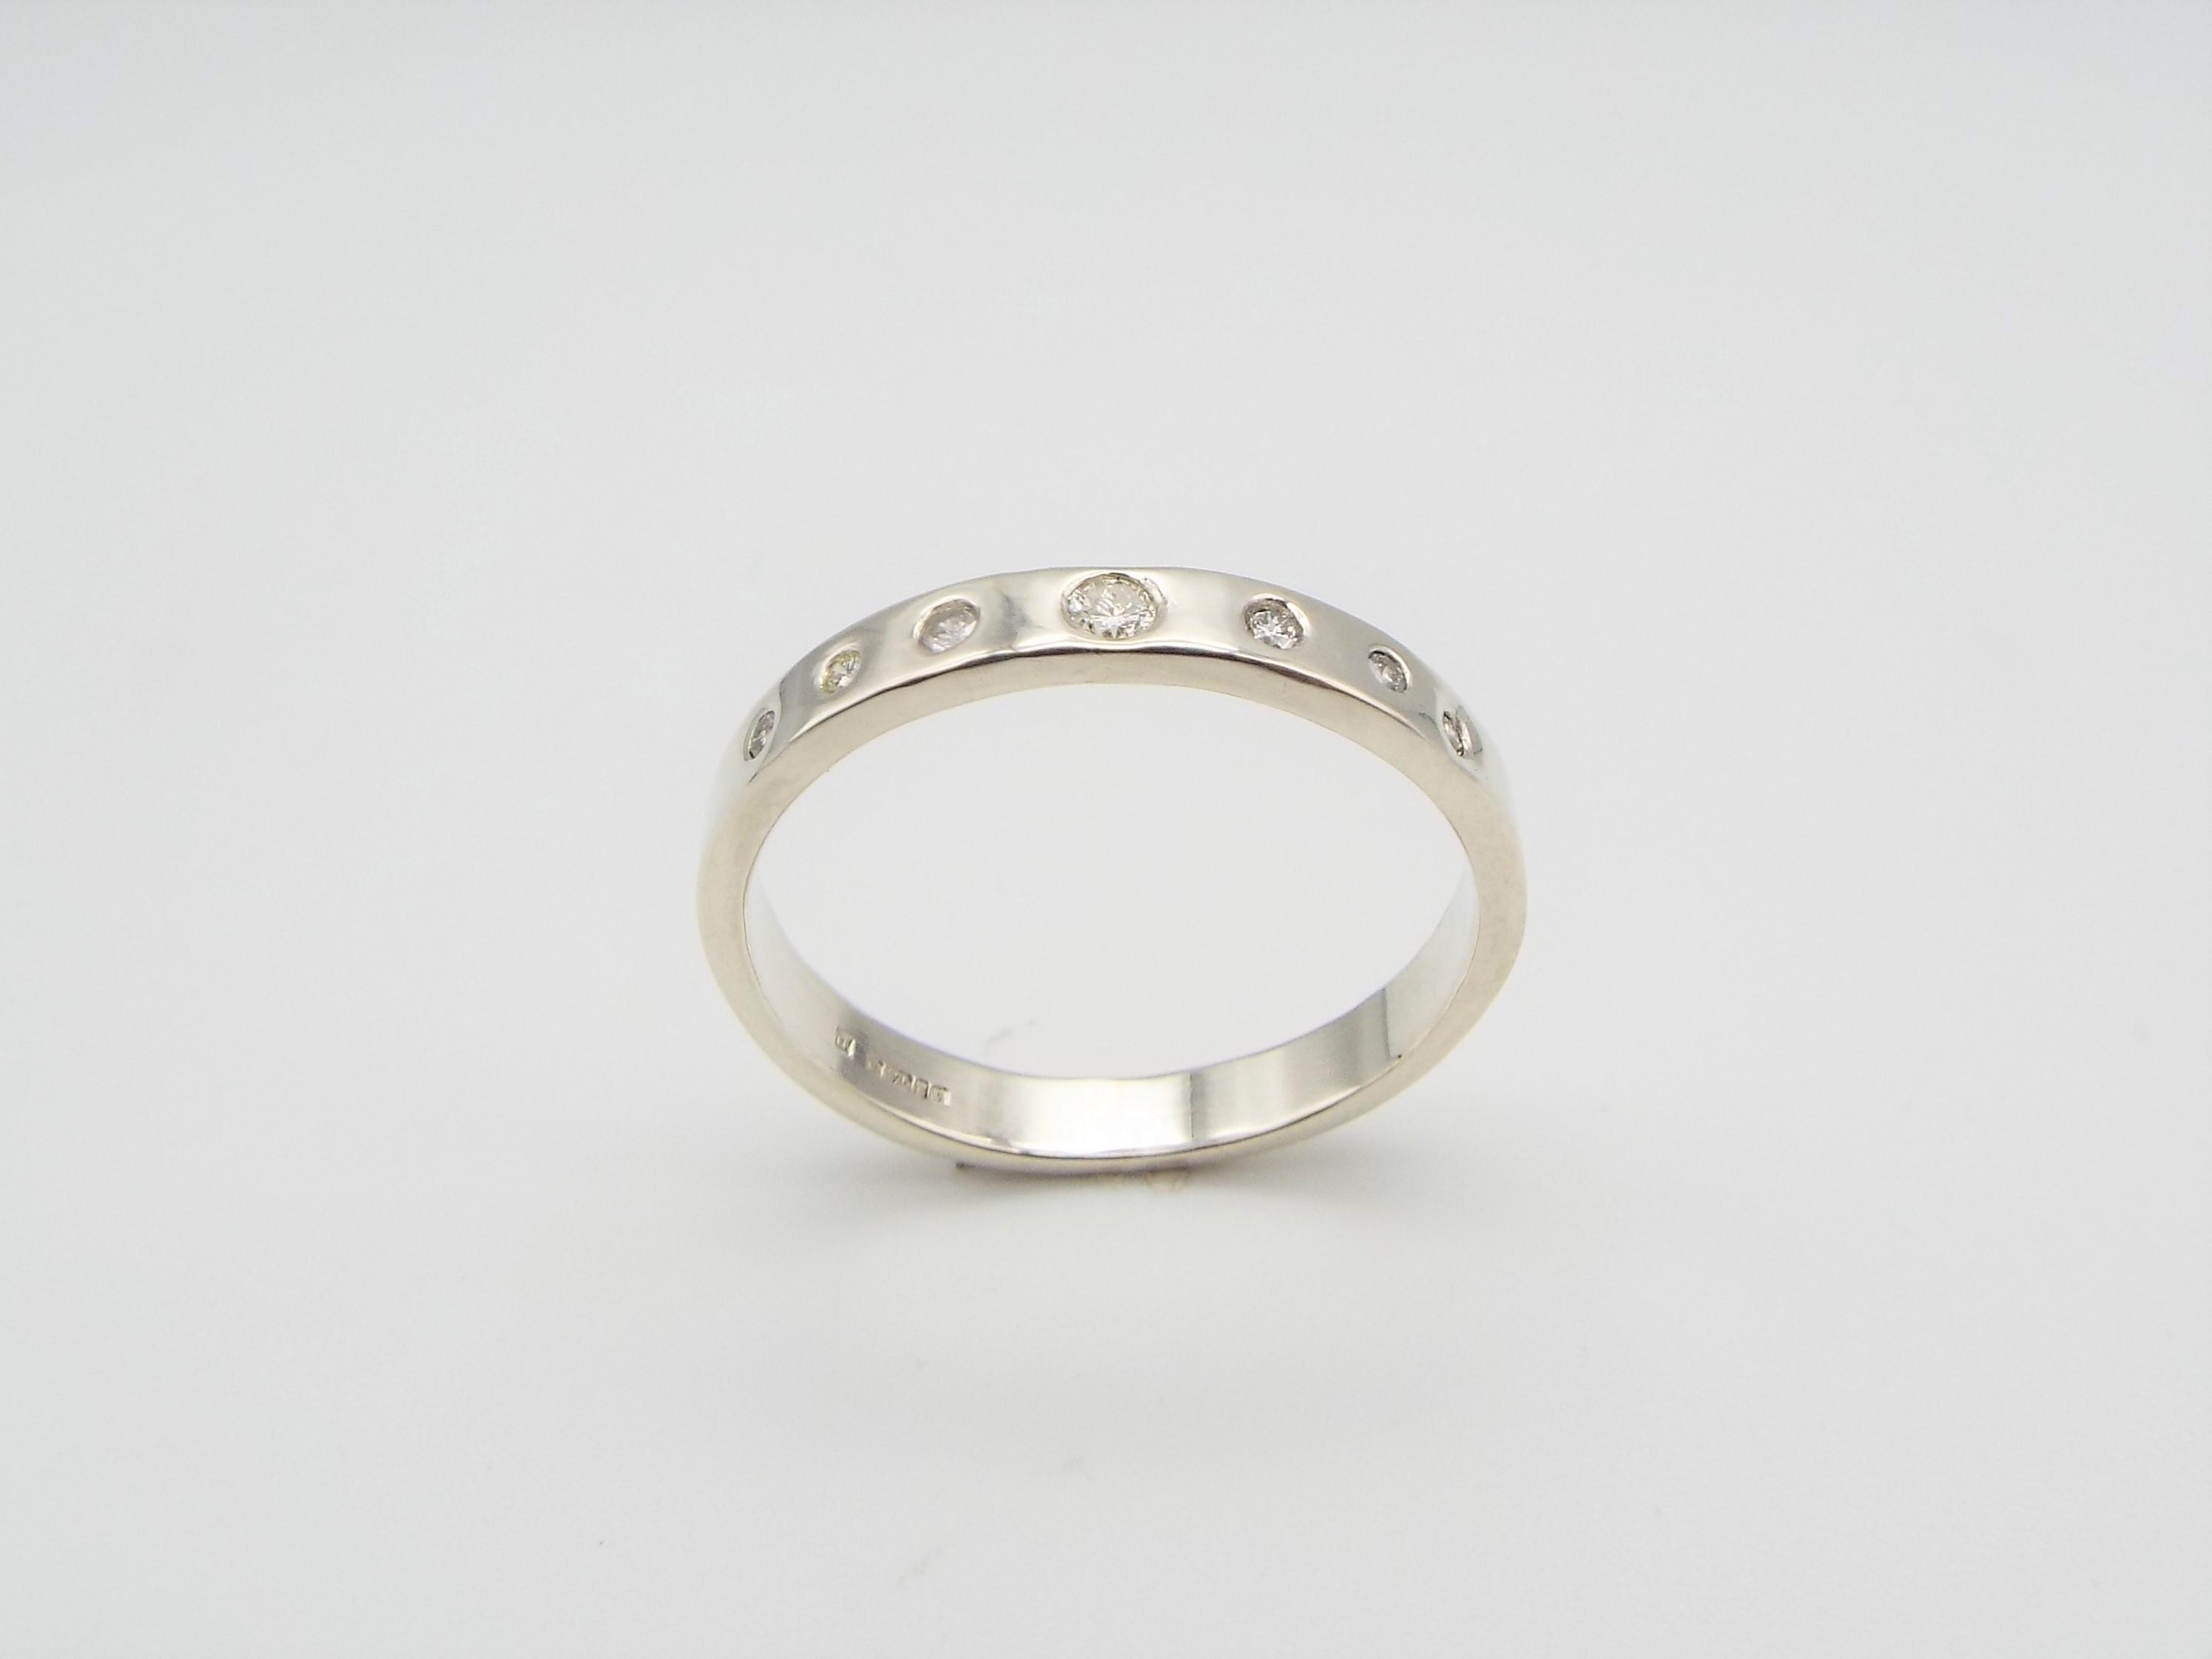 White Gold wedding ring with family diamonds